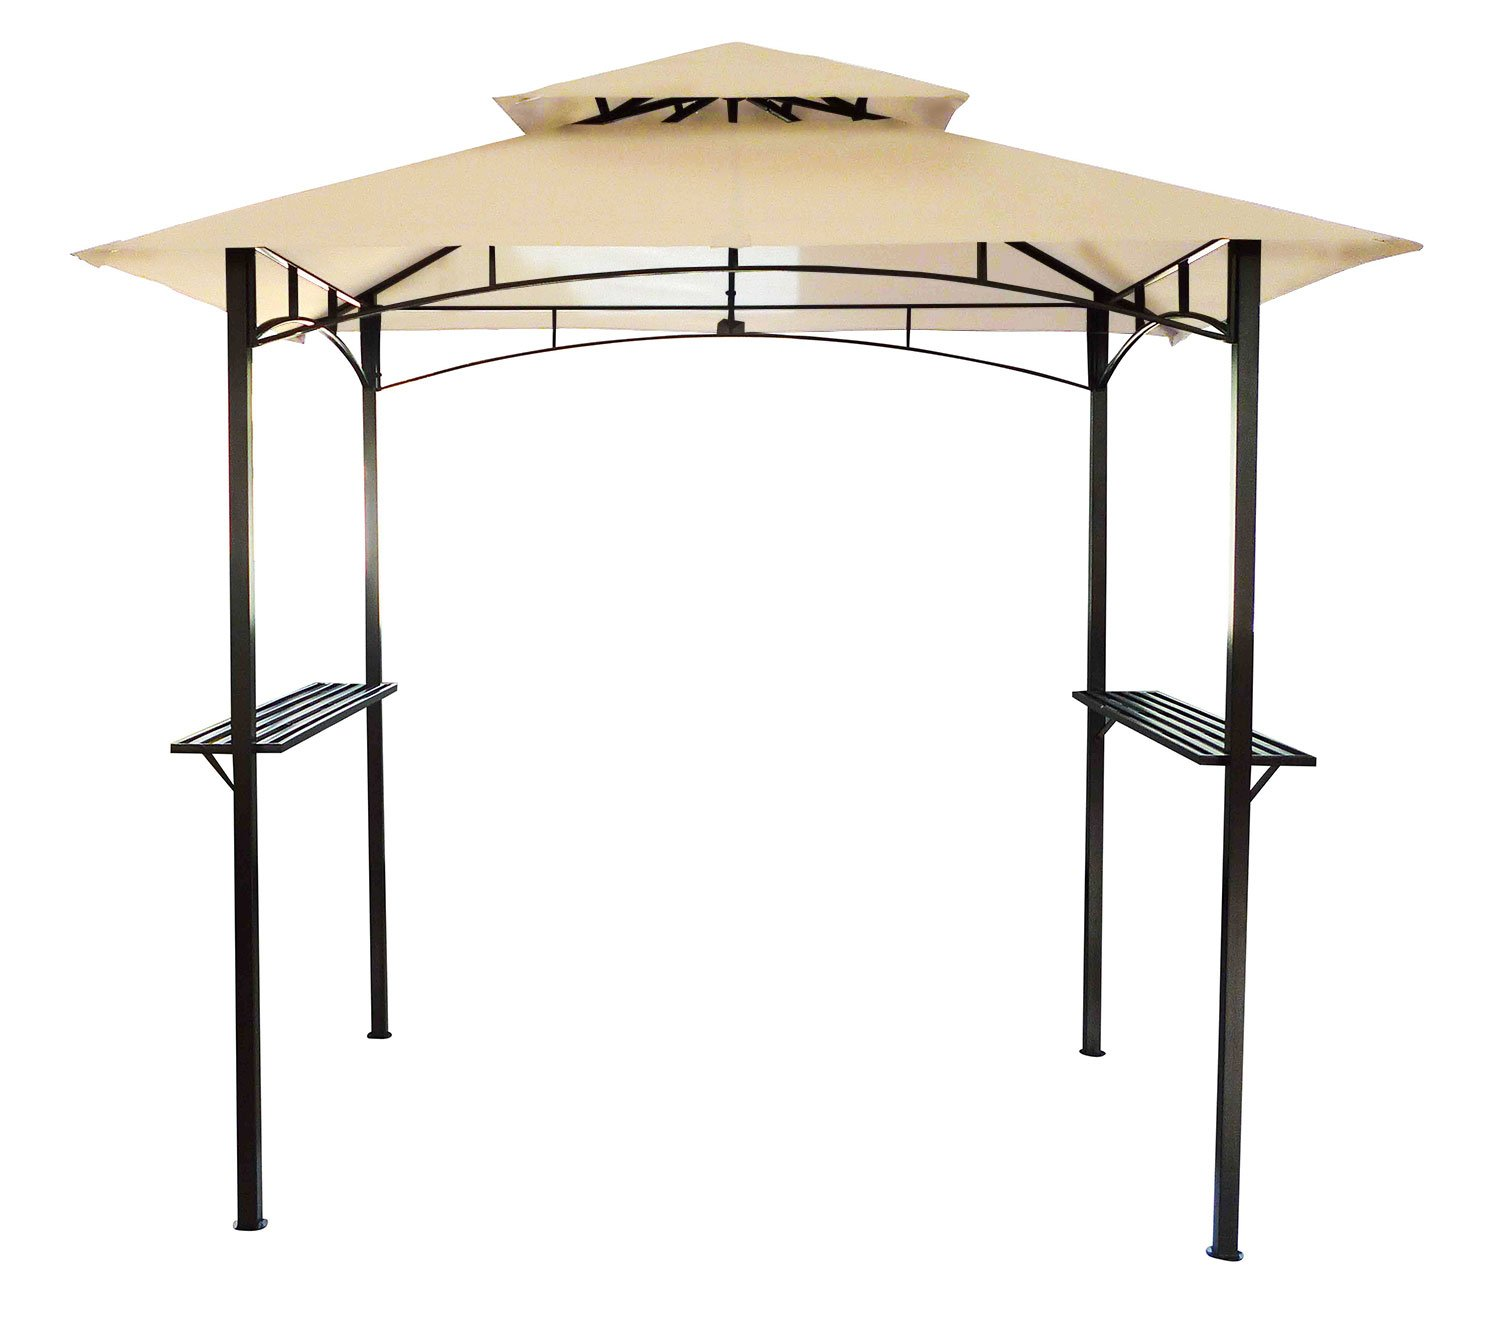 Bentley - Toldo para barbacoa de 2, 4 x 1, 5 m - Beige: Amazon.es ...